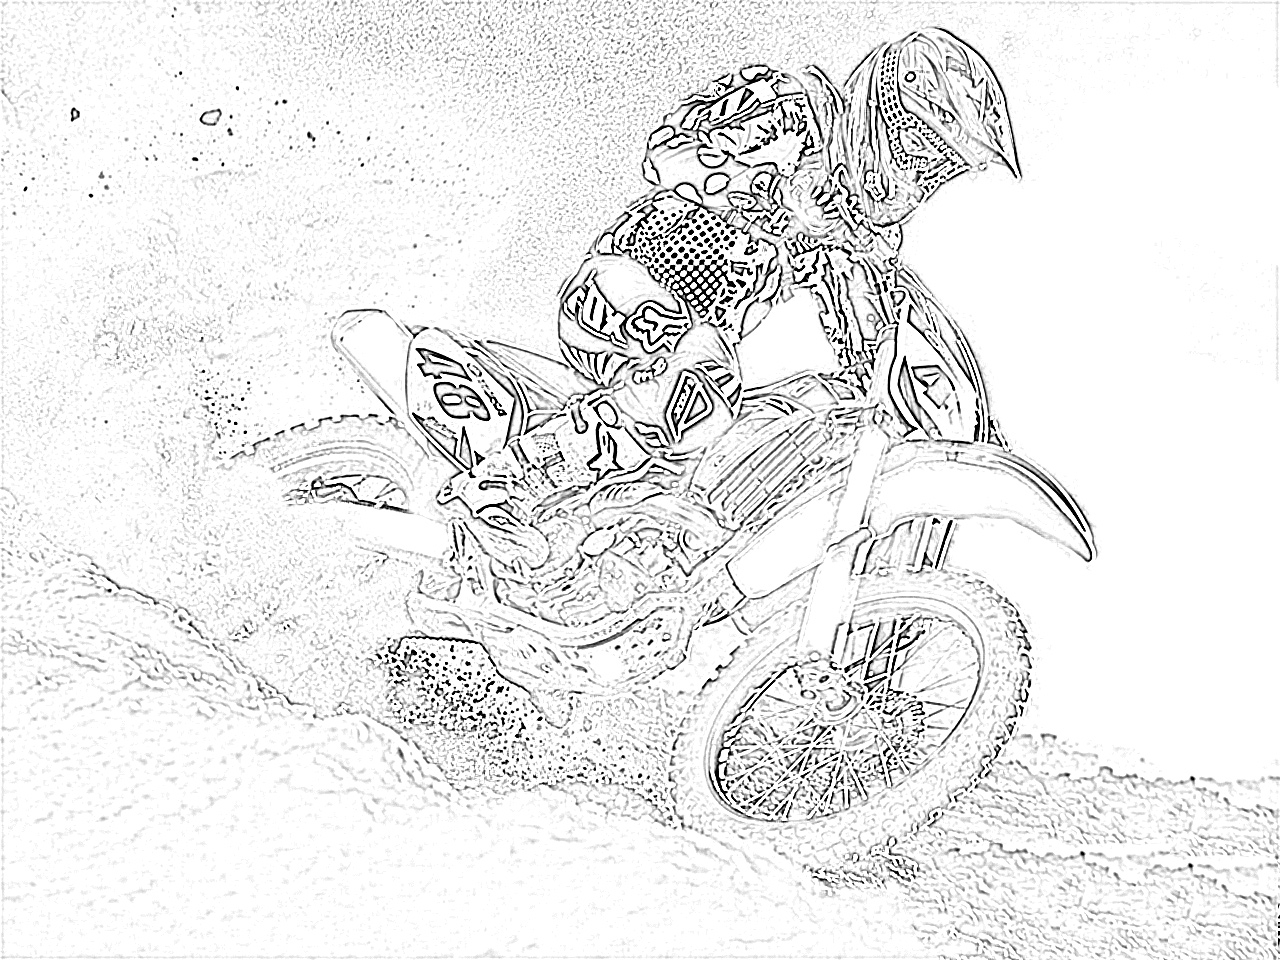 Dirt bike rooster tail coloring page